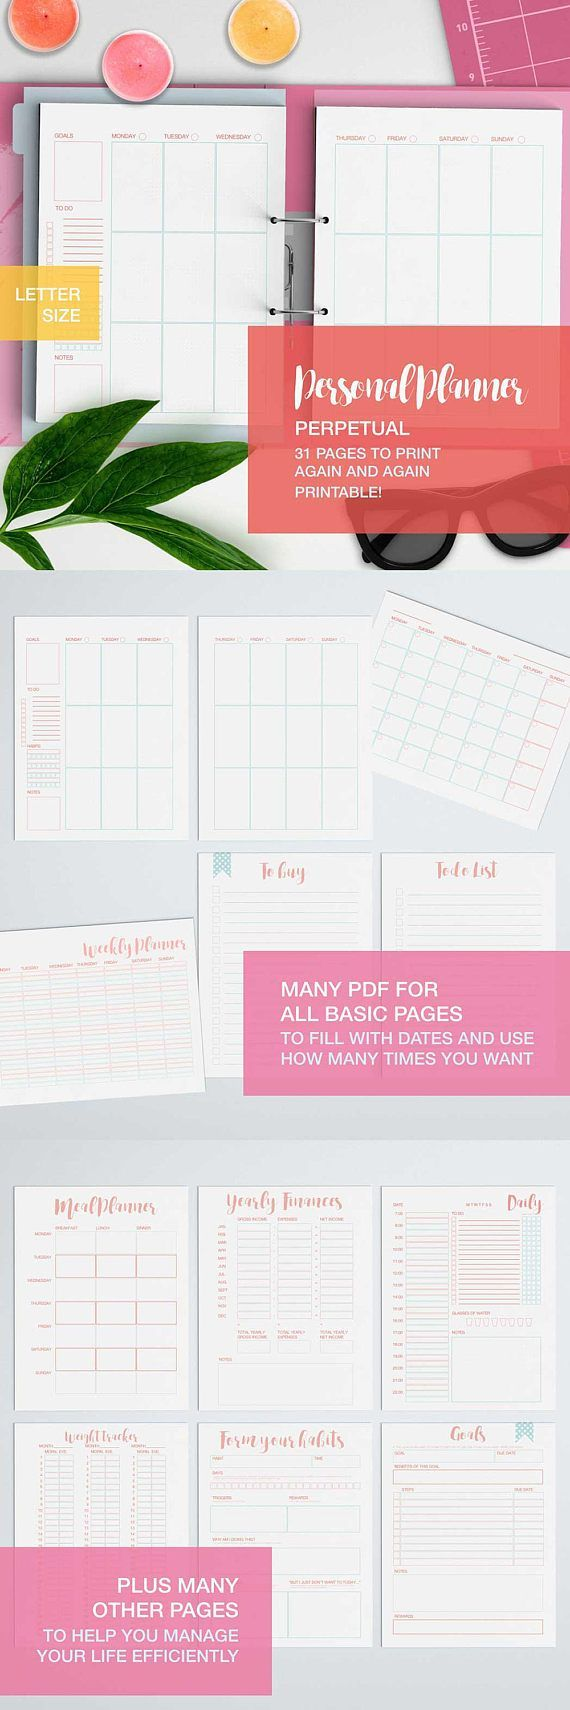 A new, completely reworked personal planner that now focuses much more on goals settings and reviews! With its 31 different PDF to be printed every time you want it contains everything youll need to lead an ordered and meaningful life where you get at a glance what its really important for you! It includes an habit forming template, a Time-square to help you sort out your priorities and goals planner, chores planners, and daily expense trackers and yearly budget and so and so on...